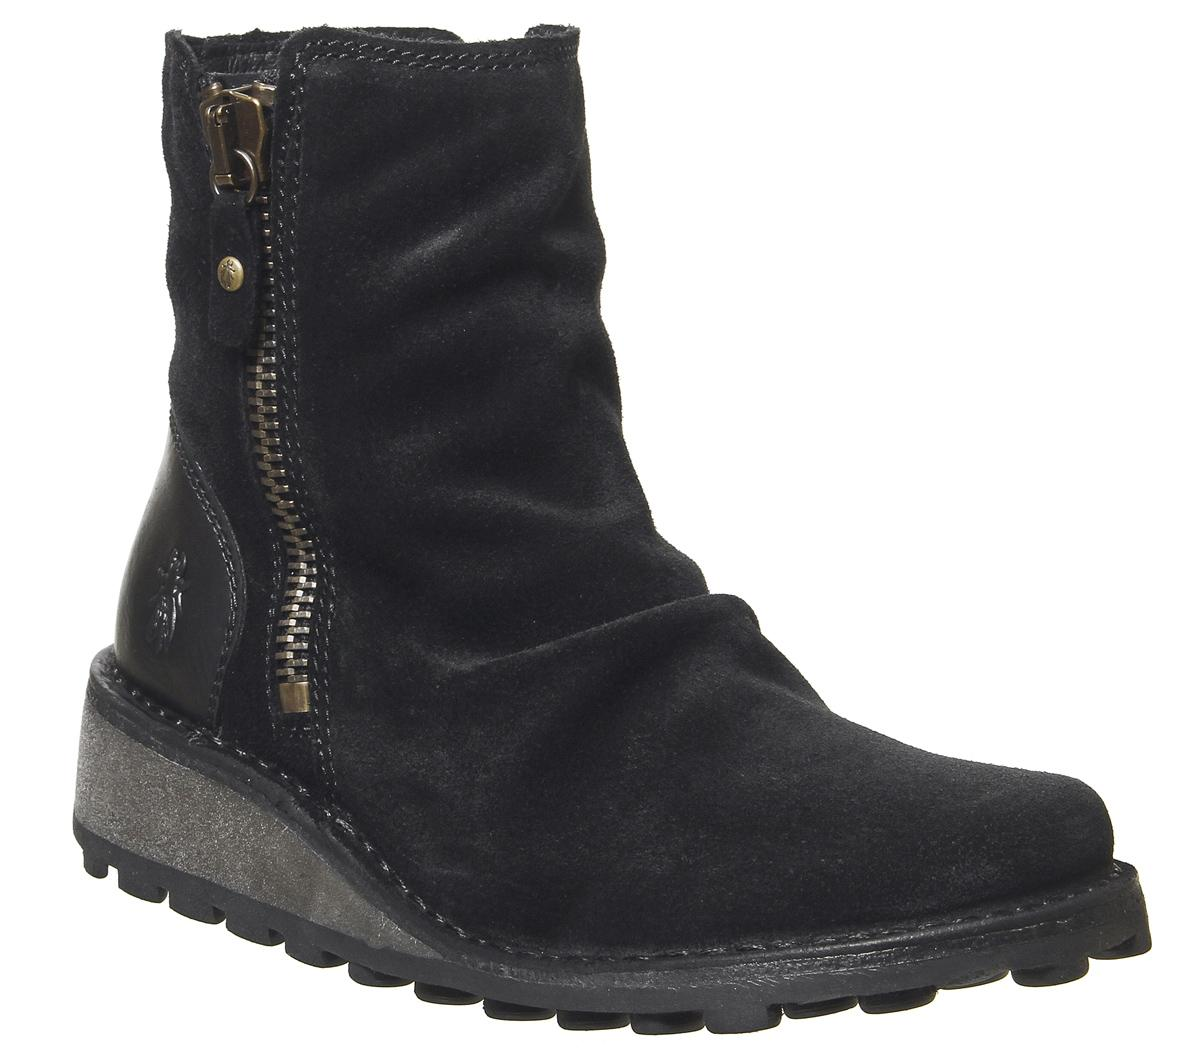 Fly London Mon Zip Boots Black Suede